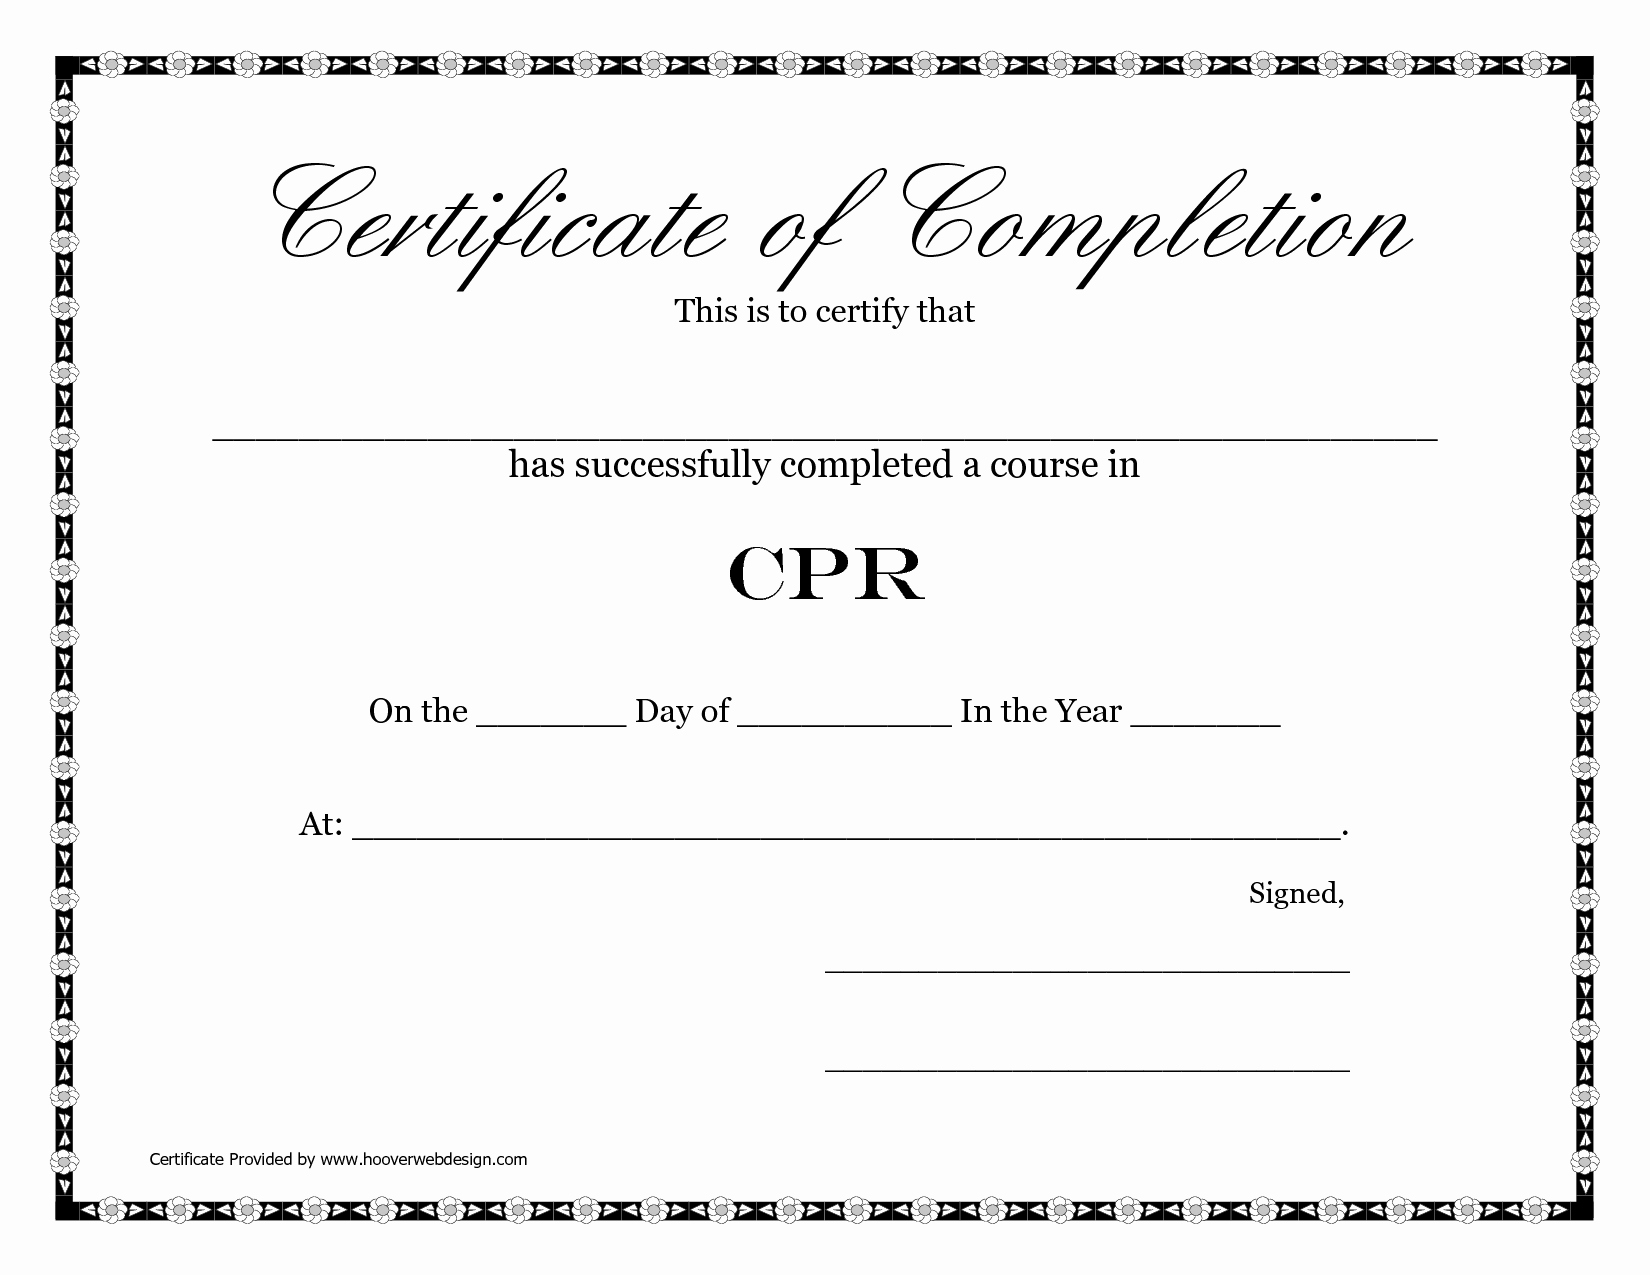 Blank Certificate Of Completion Template New Printable Blank Certificate Pletion Cpr Template V